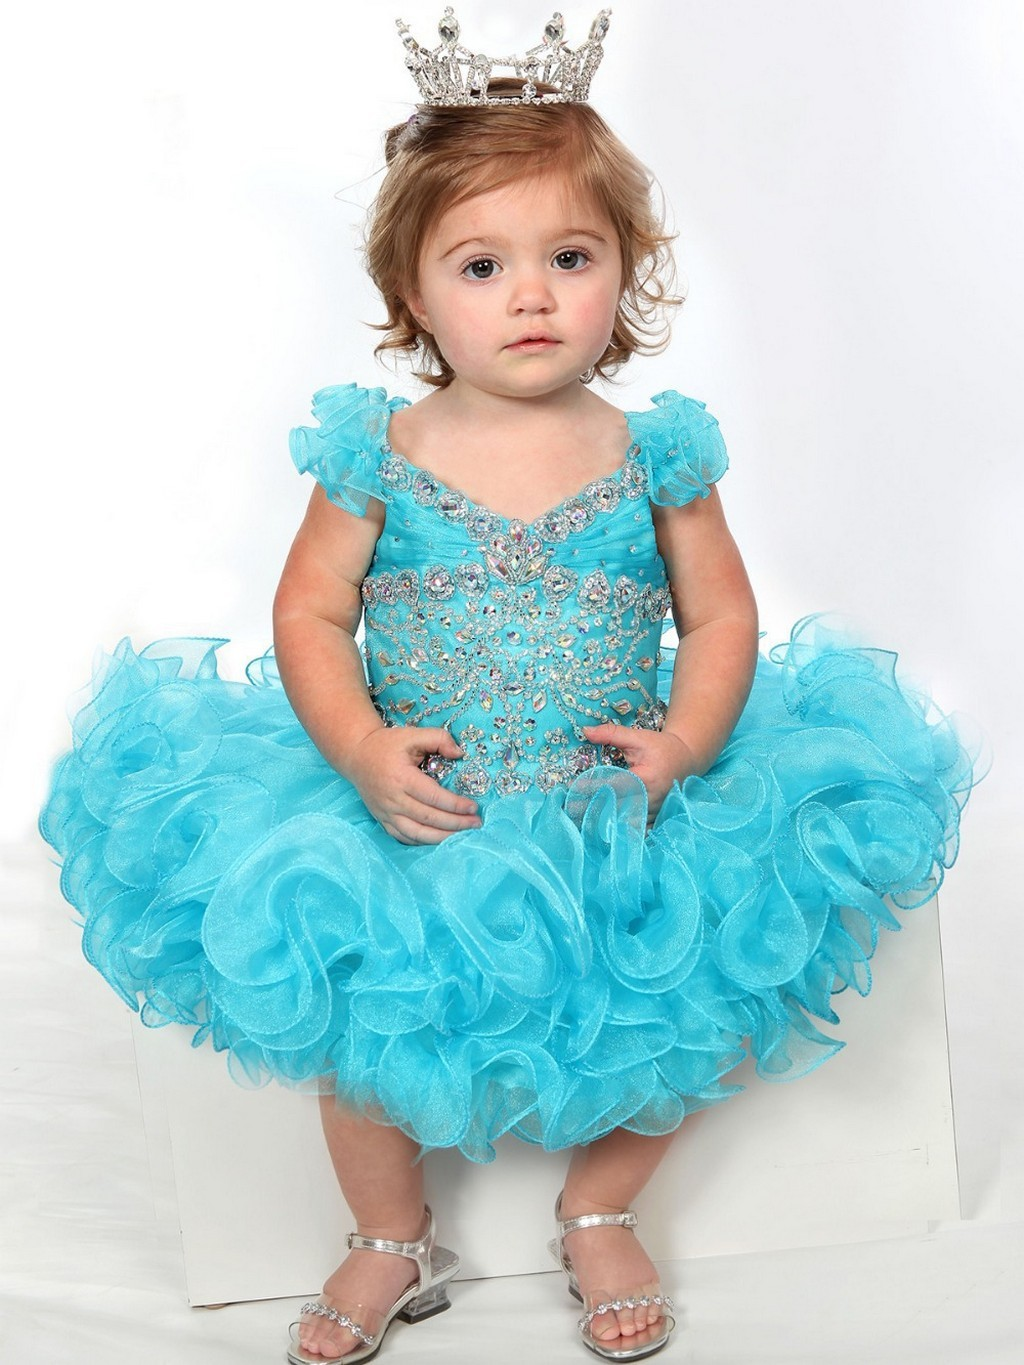 Baby Dress For 1 Year Old : Things To Know Before Choosing